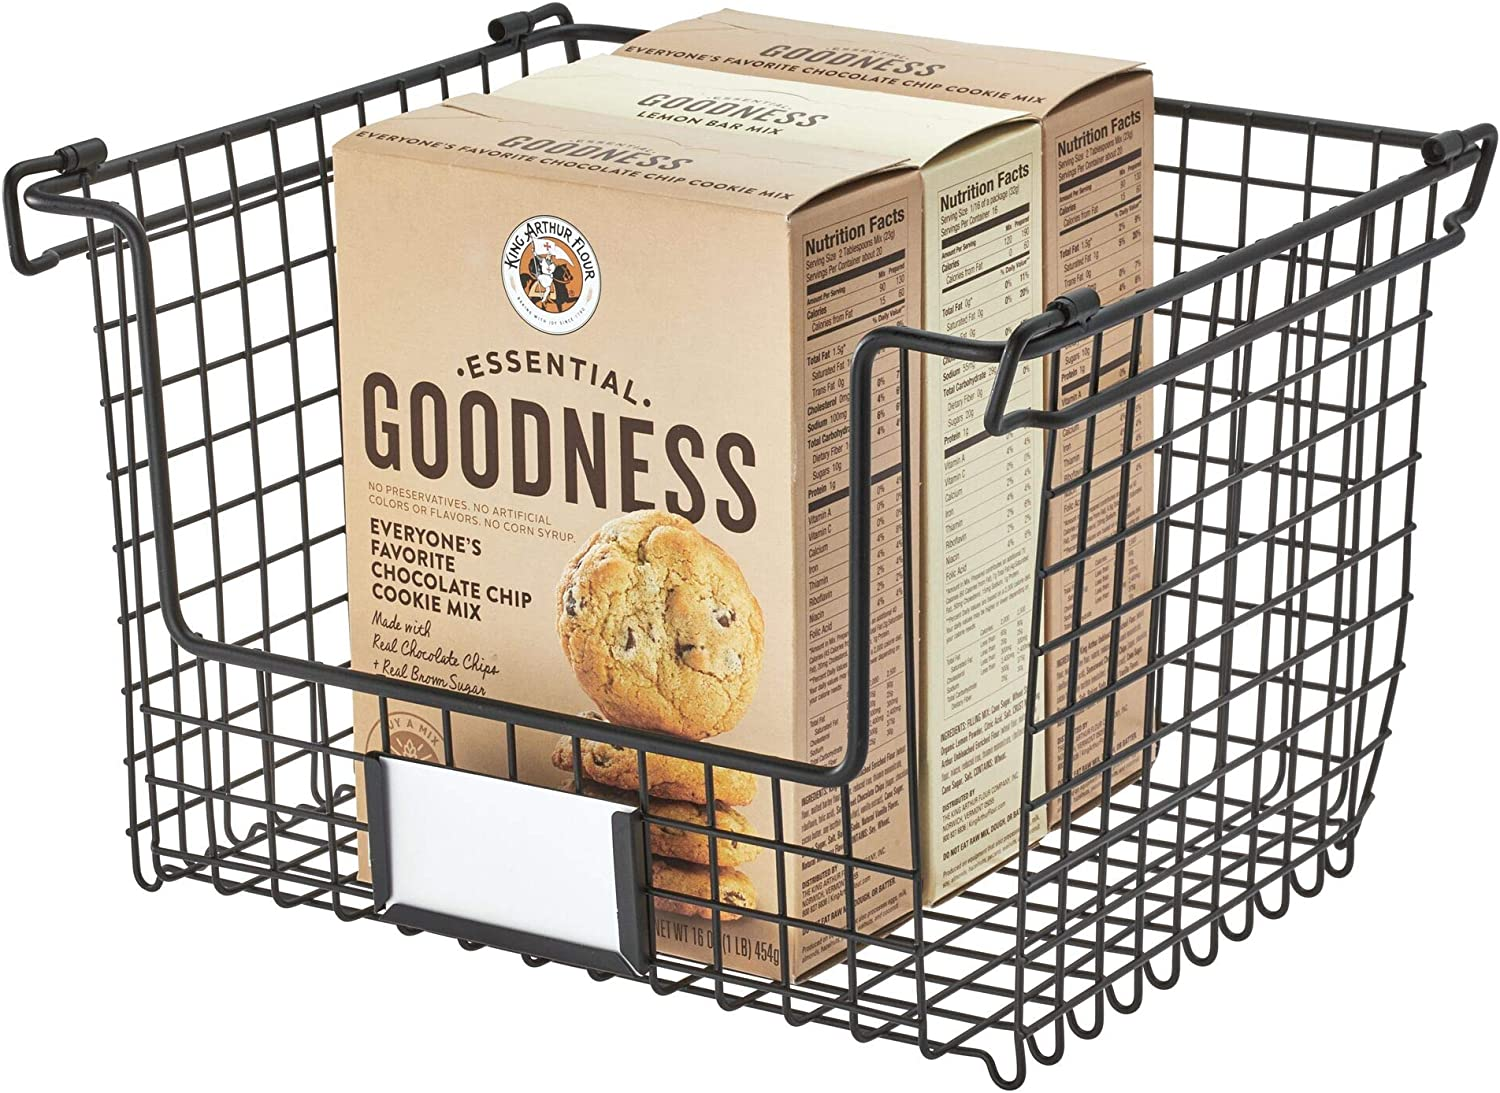 """iDesign Classico Storage Basket with Handles for Pantry, Kitchen, Bathroom, Countertop, and Desk Organization, 12"""" x 10"""" x 7.75"""", Stackable - Large"""